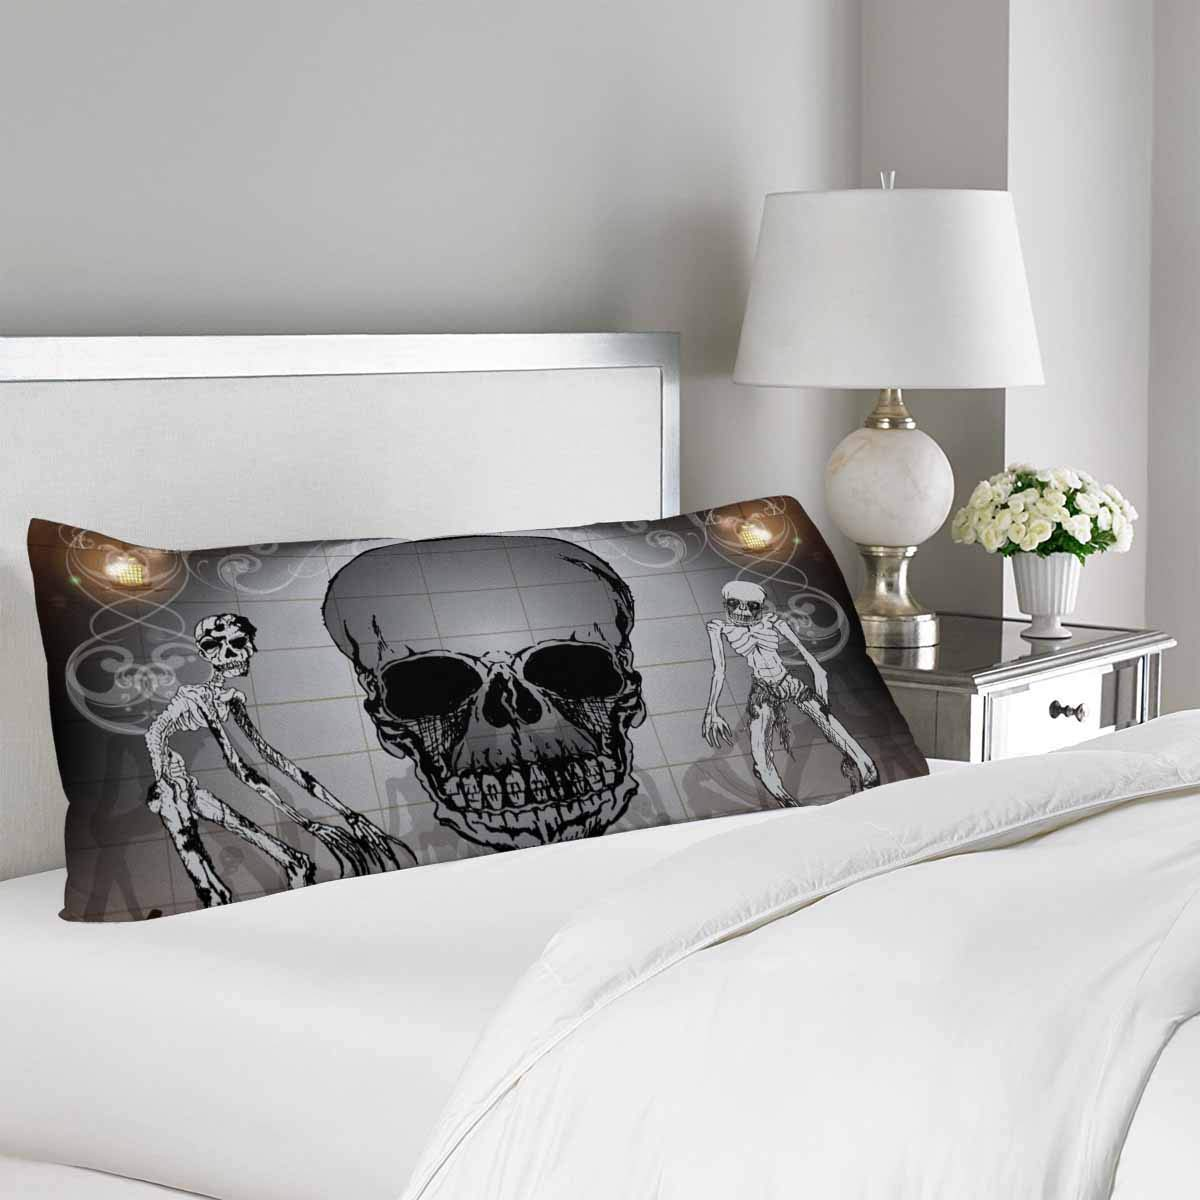 GCKG Halloween Skull Sketch Pattern Body Pillow Covers Case Protector 20x60 inches - image 1 of 2